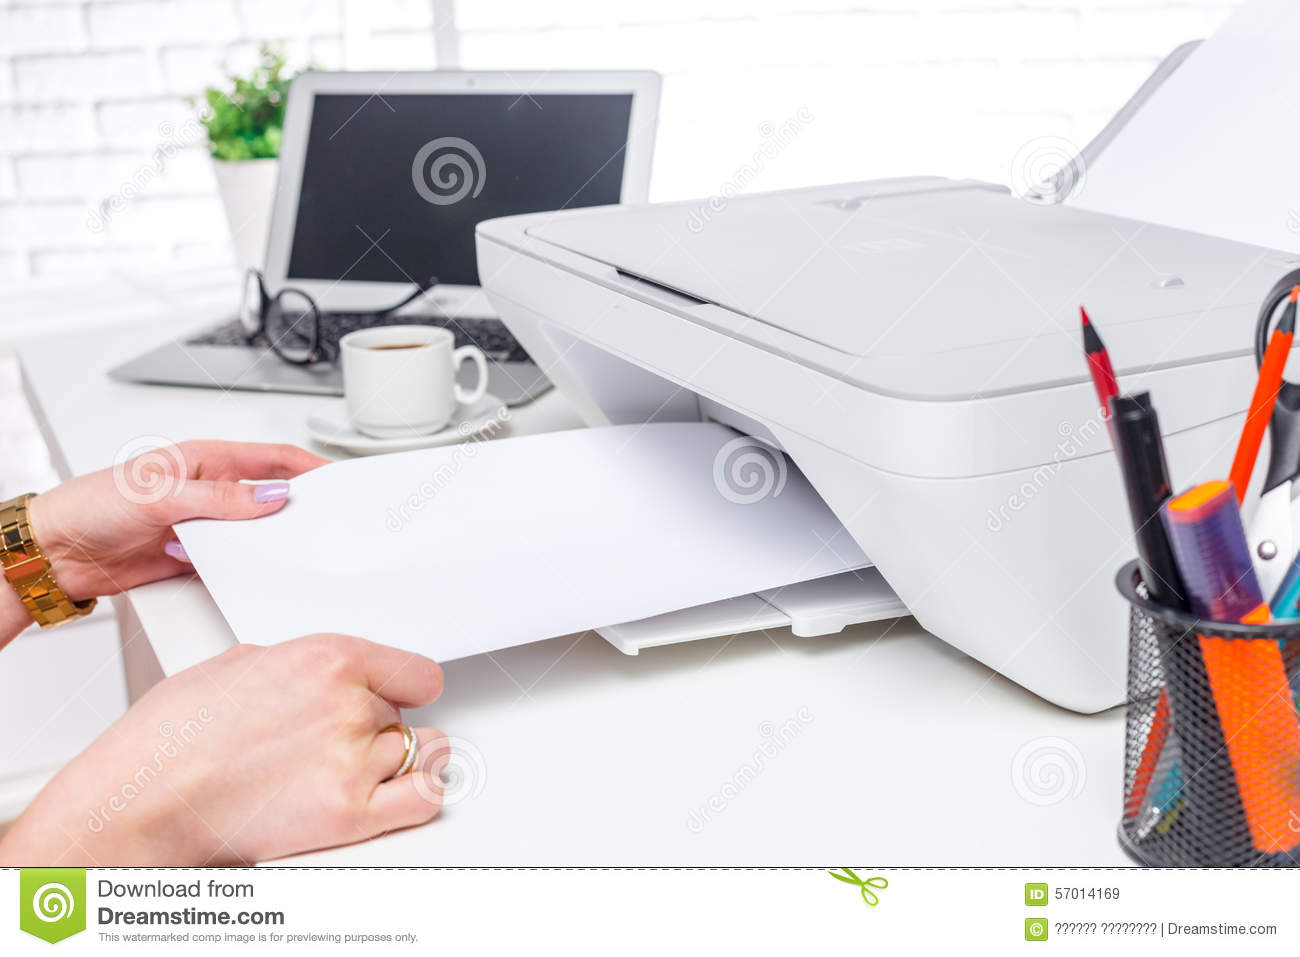 how to download printer to laptop